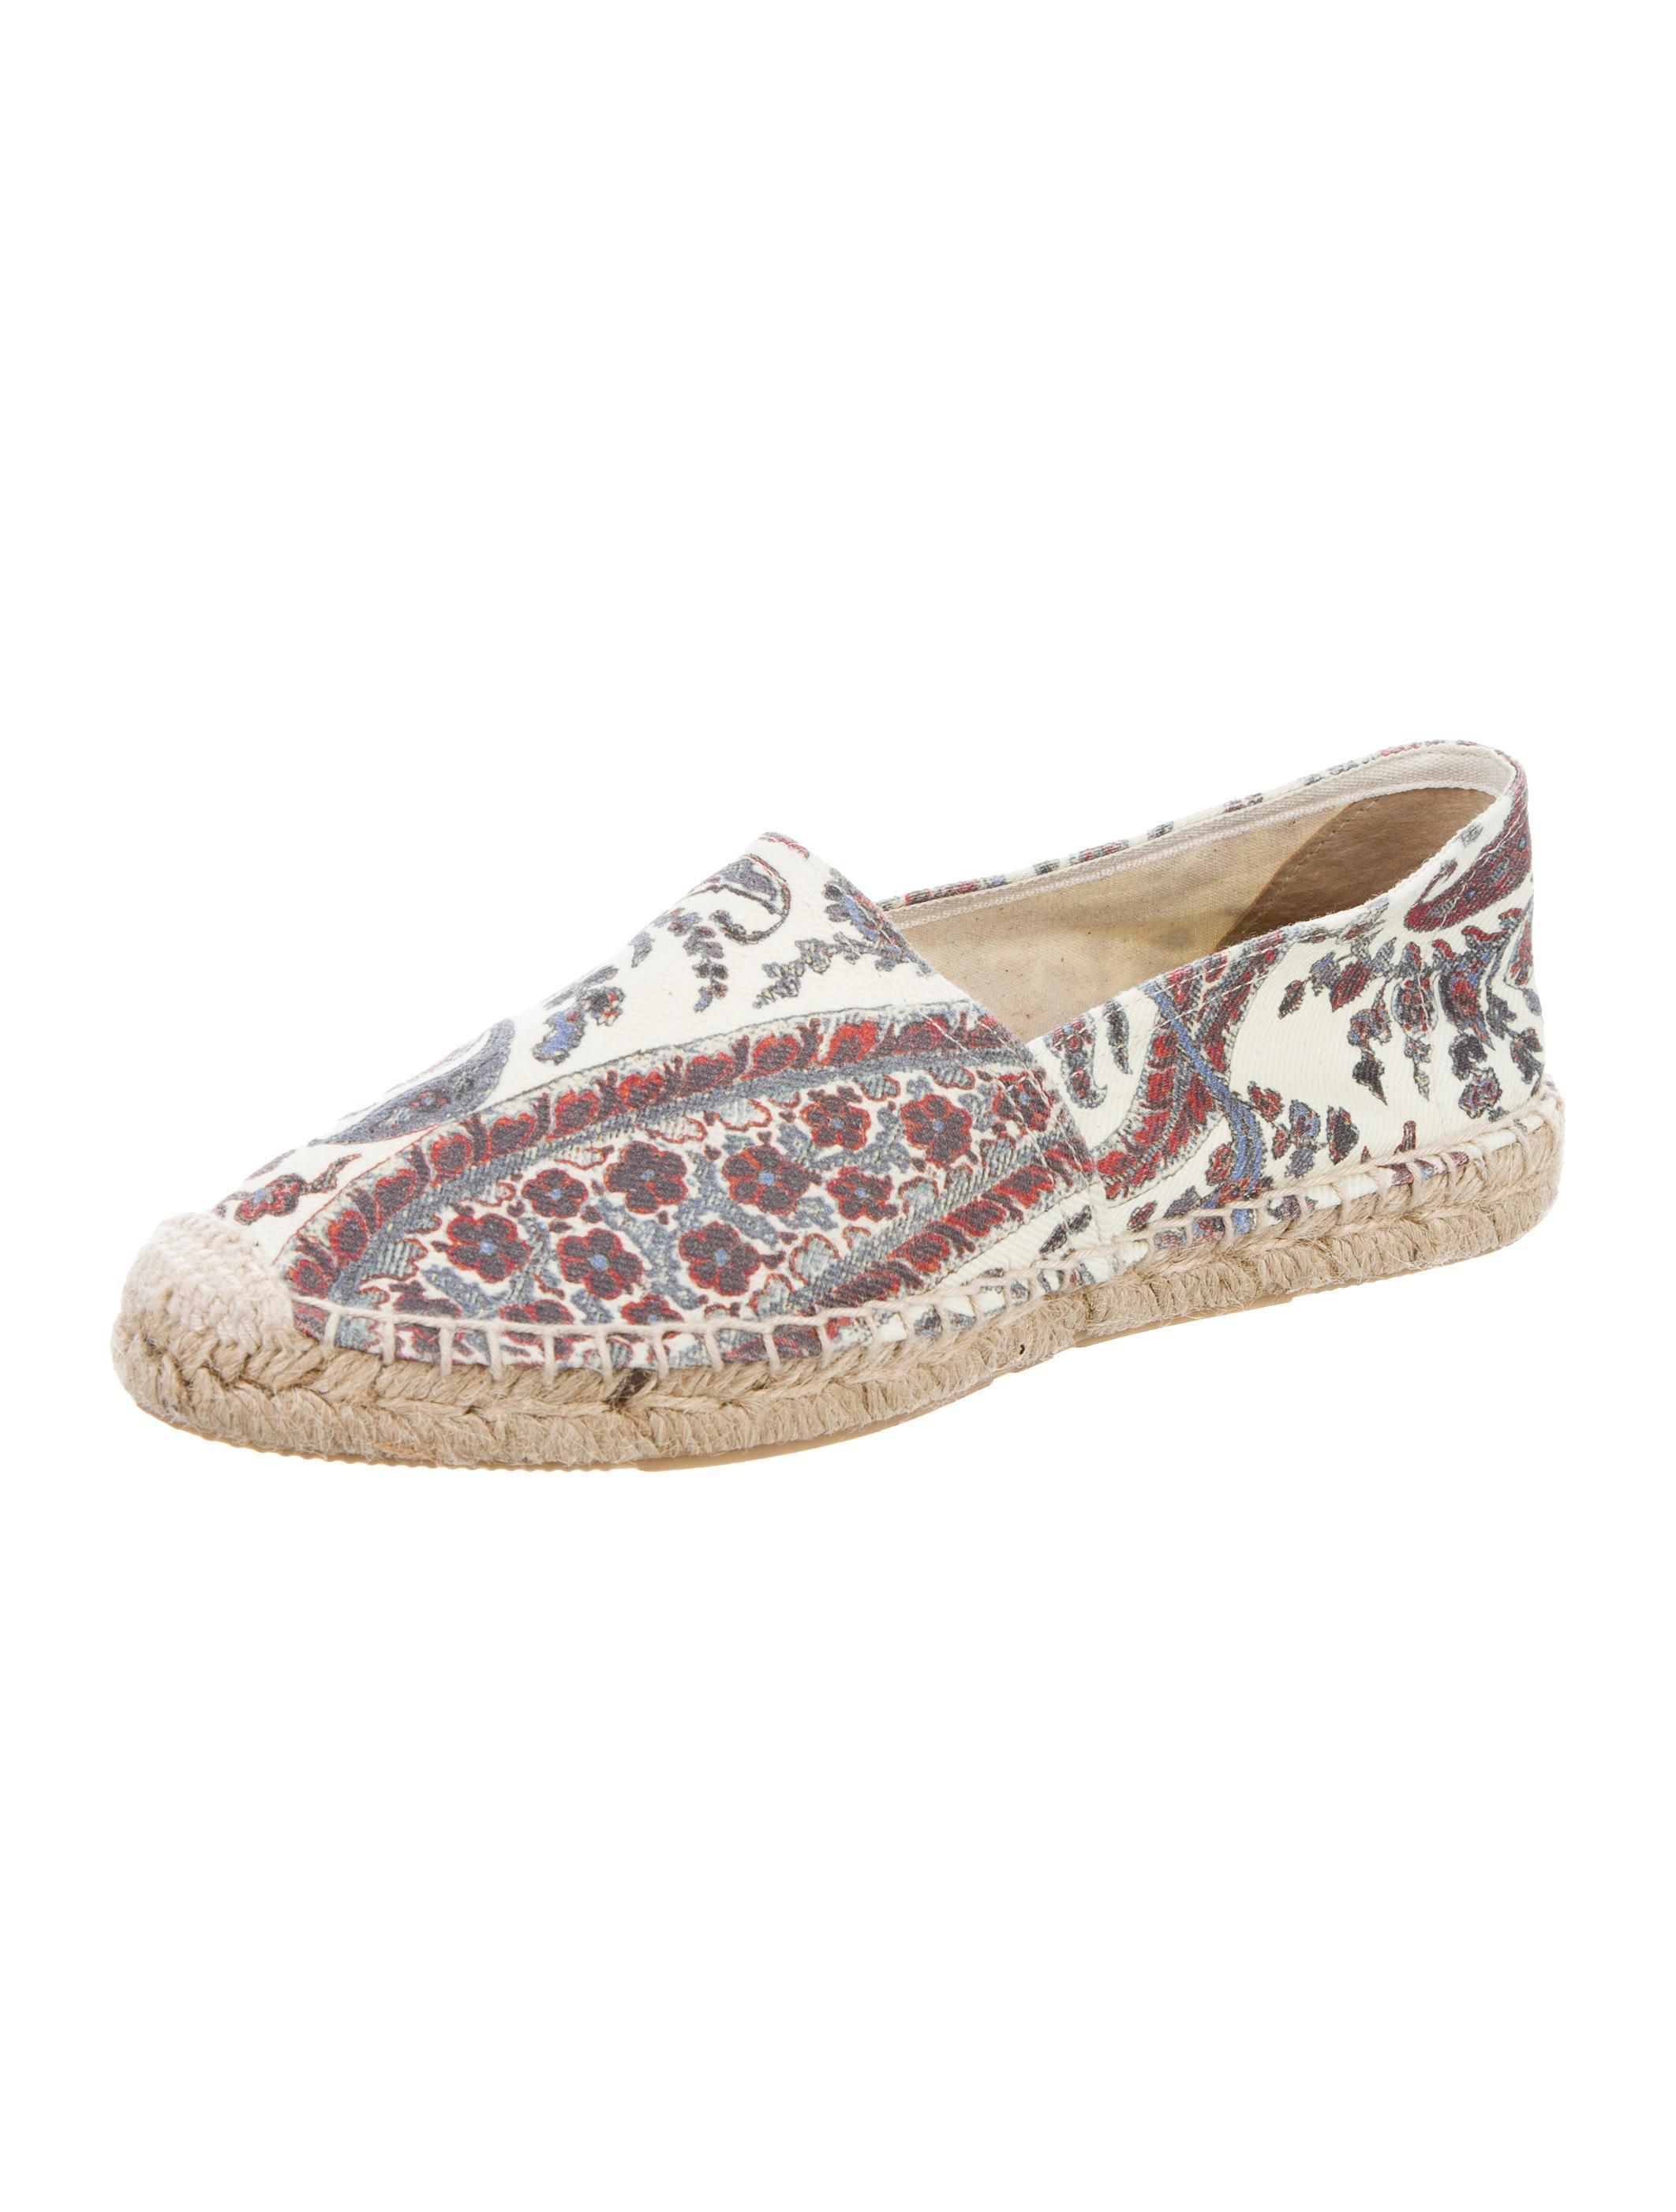 where can i order cheap sale view Étoile Isabel Marant Canvas Espadrille Flats outlet really Uc4RY46M